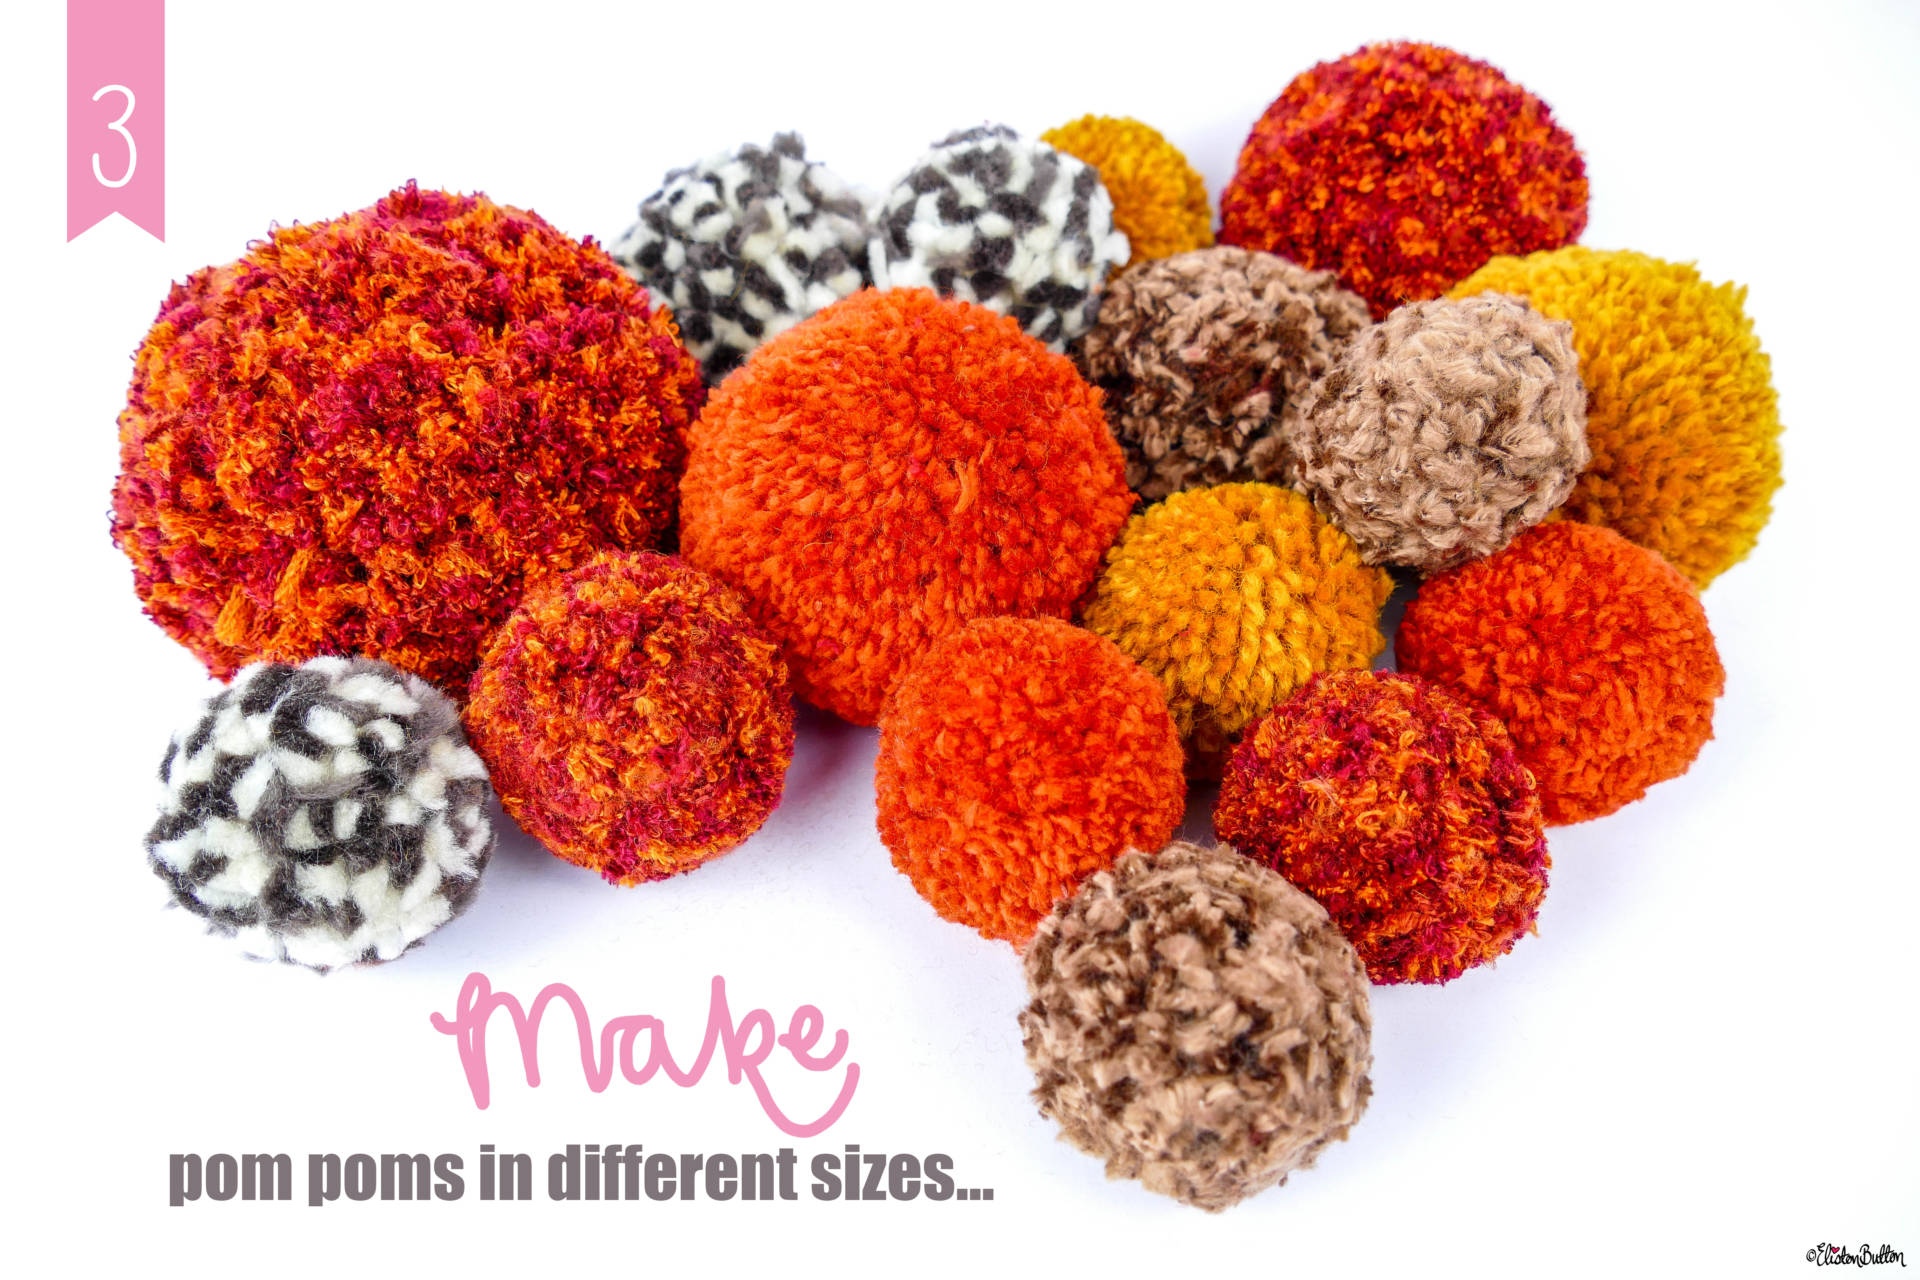 Autumnal Coloured Pom Poms - Tutorial Tuesday - Simple Autumn Pom Pom Decor at www.elistonbutton.com - Eliston Button - That Crafty Kid – Art, Design, Craft & Adventure.